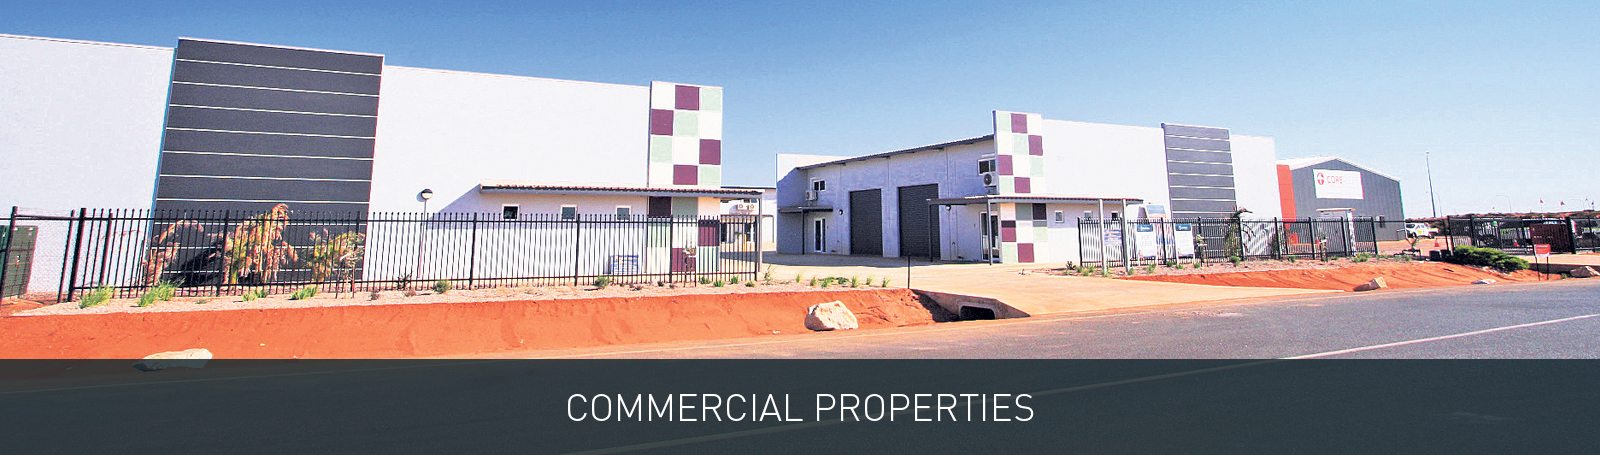 COMMERCIAL PROPERTIES APPRAISAL